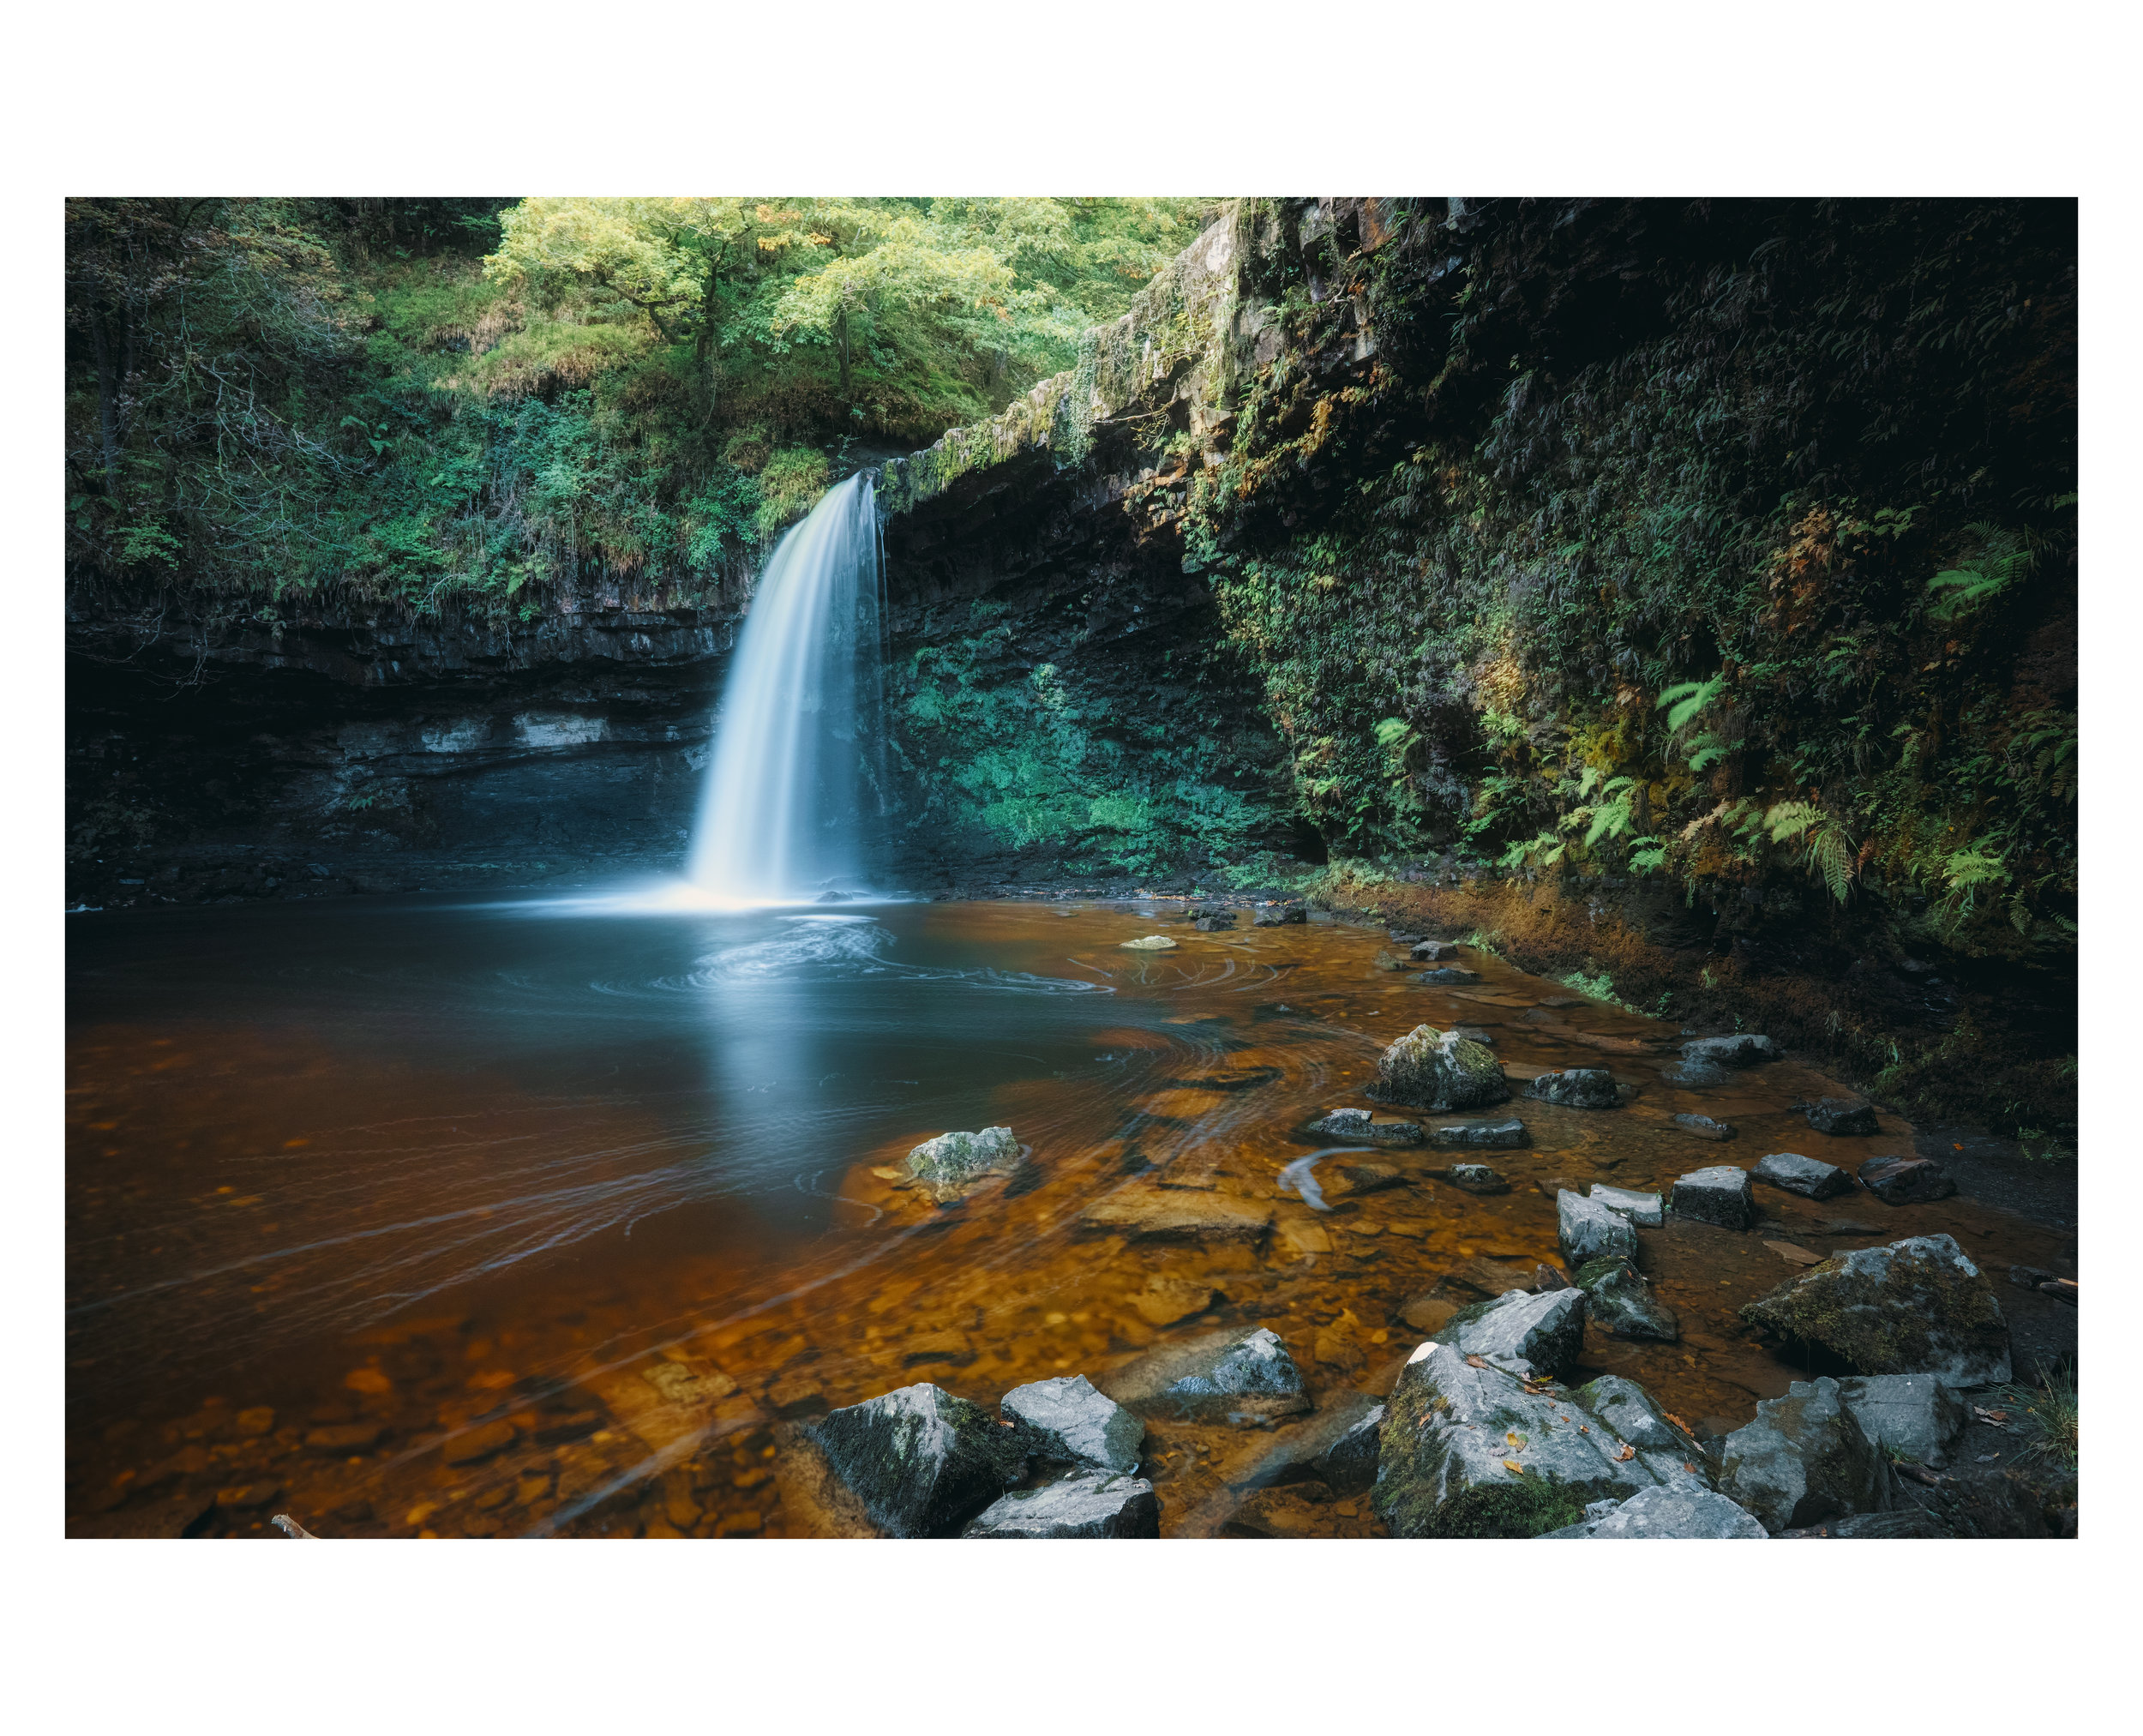 south_wales-brecon_beacons-fullmatte-02.jpg